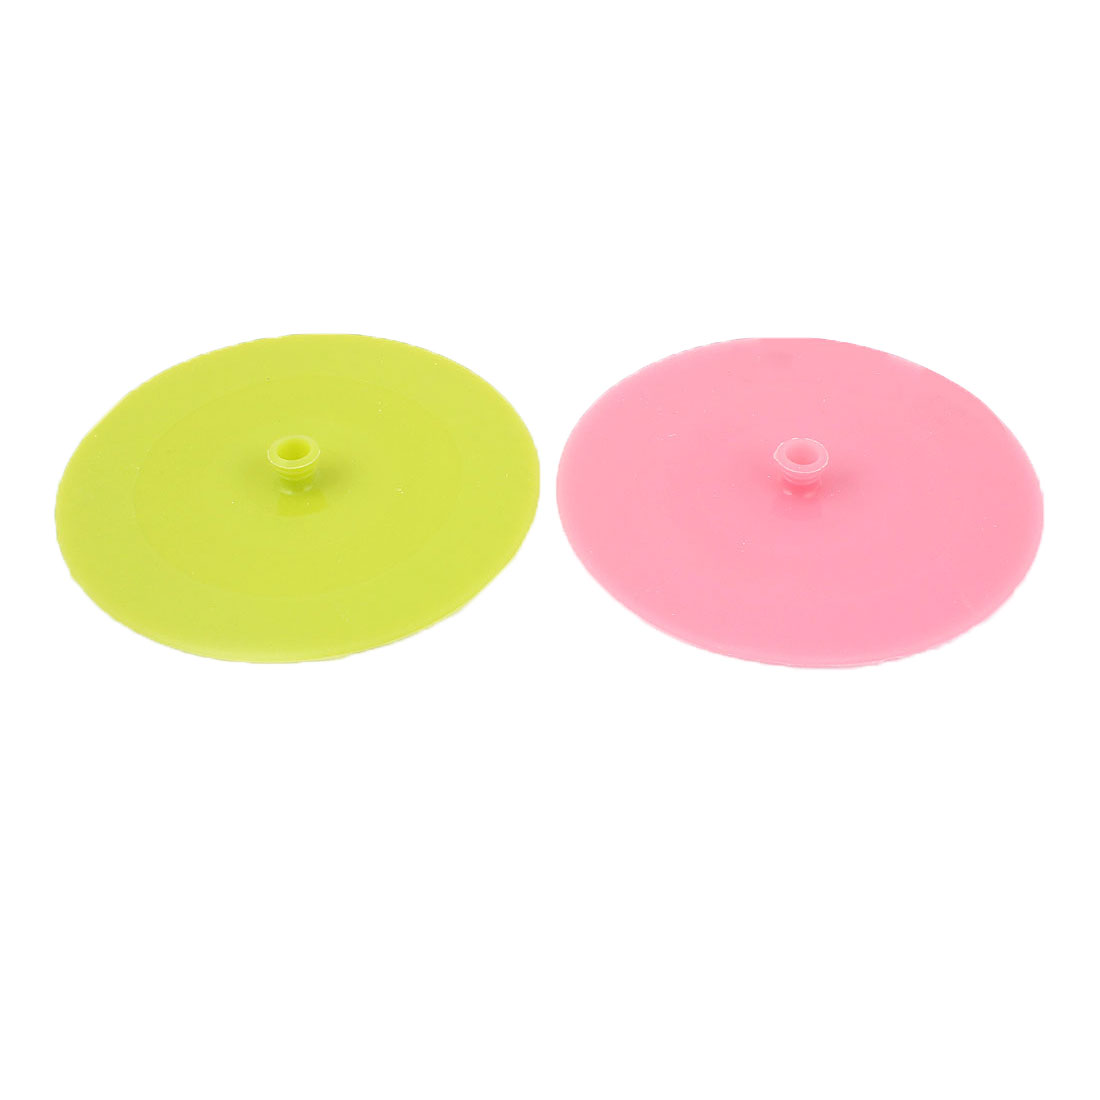 13.5cm Dia Silicone Cooking Food Storage Bowl Cup Cover Wrap Suction Lid 2Pcs